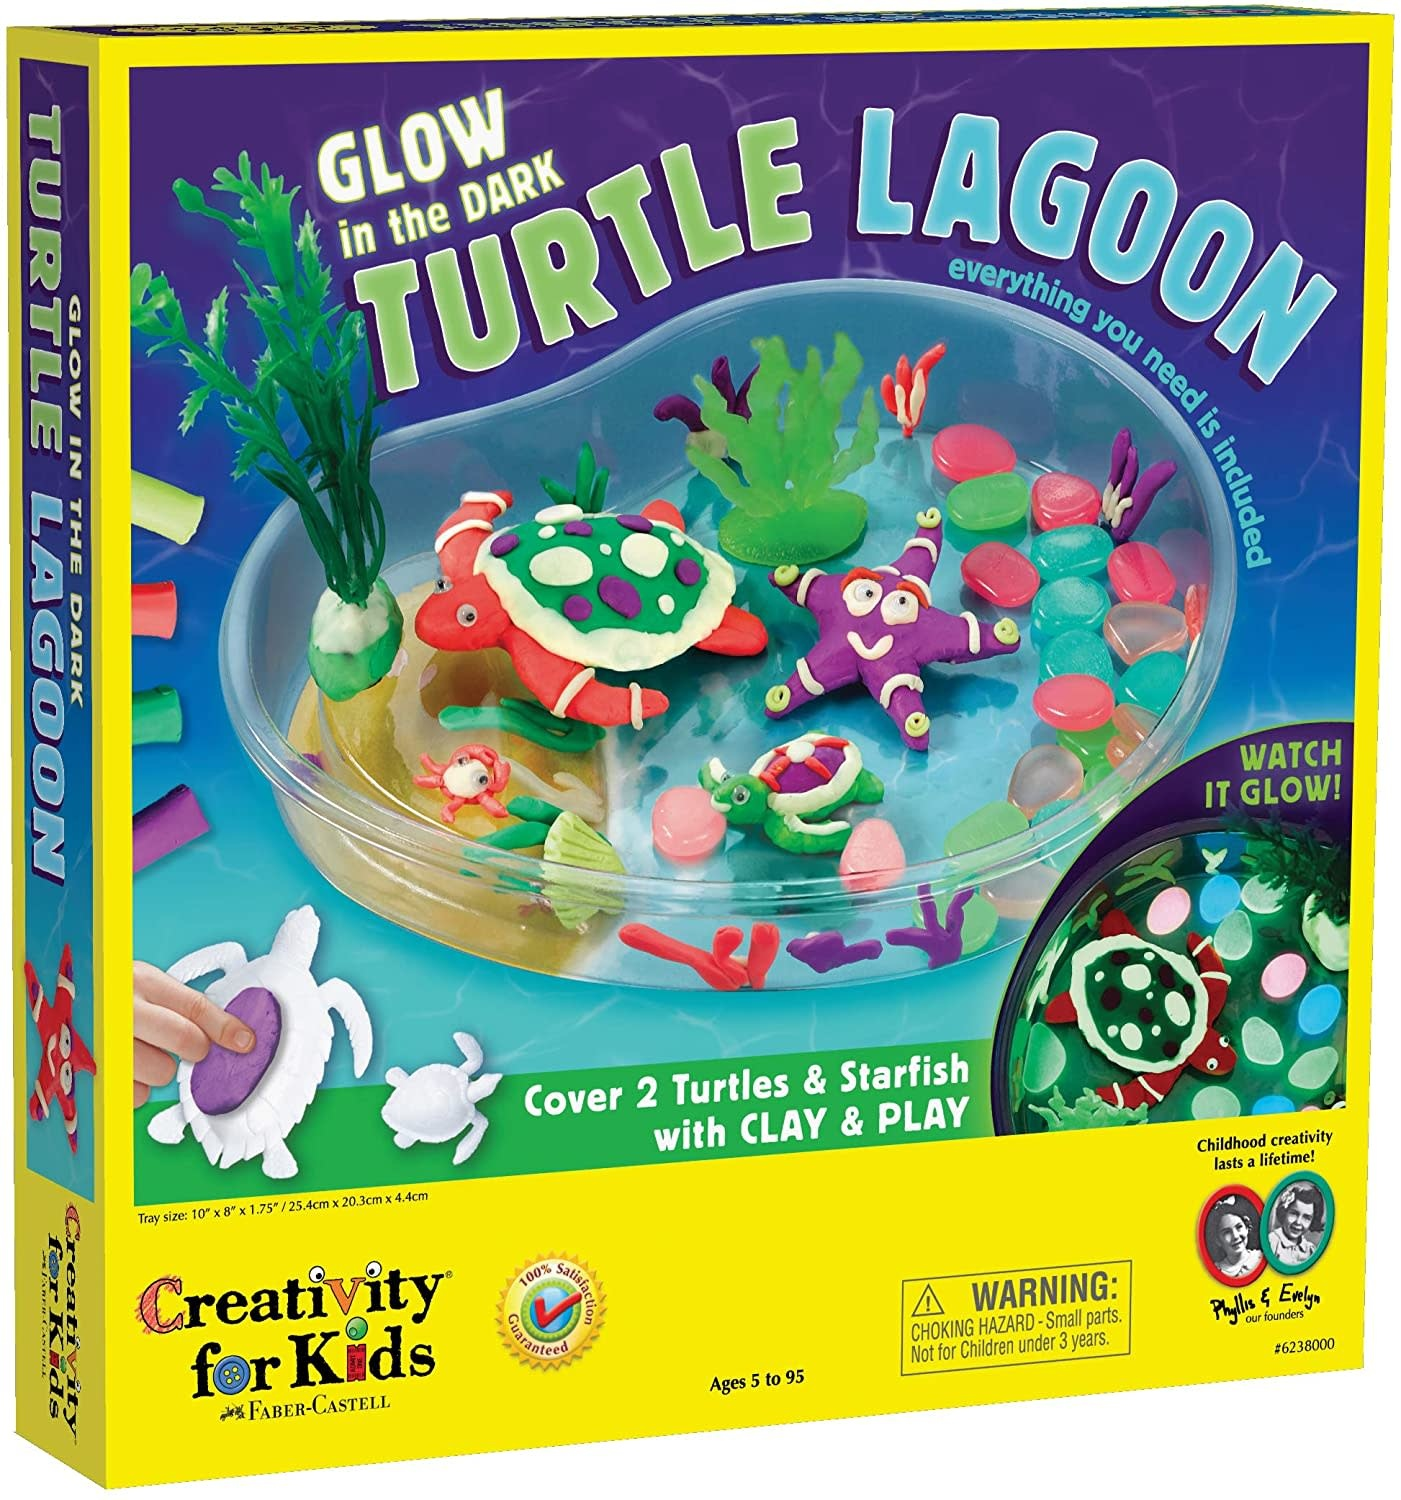 Glow in the Dark Turtle Lagoon by Creativity for Kids